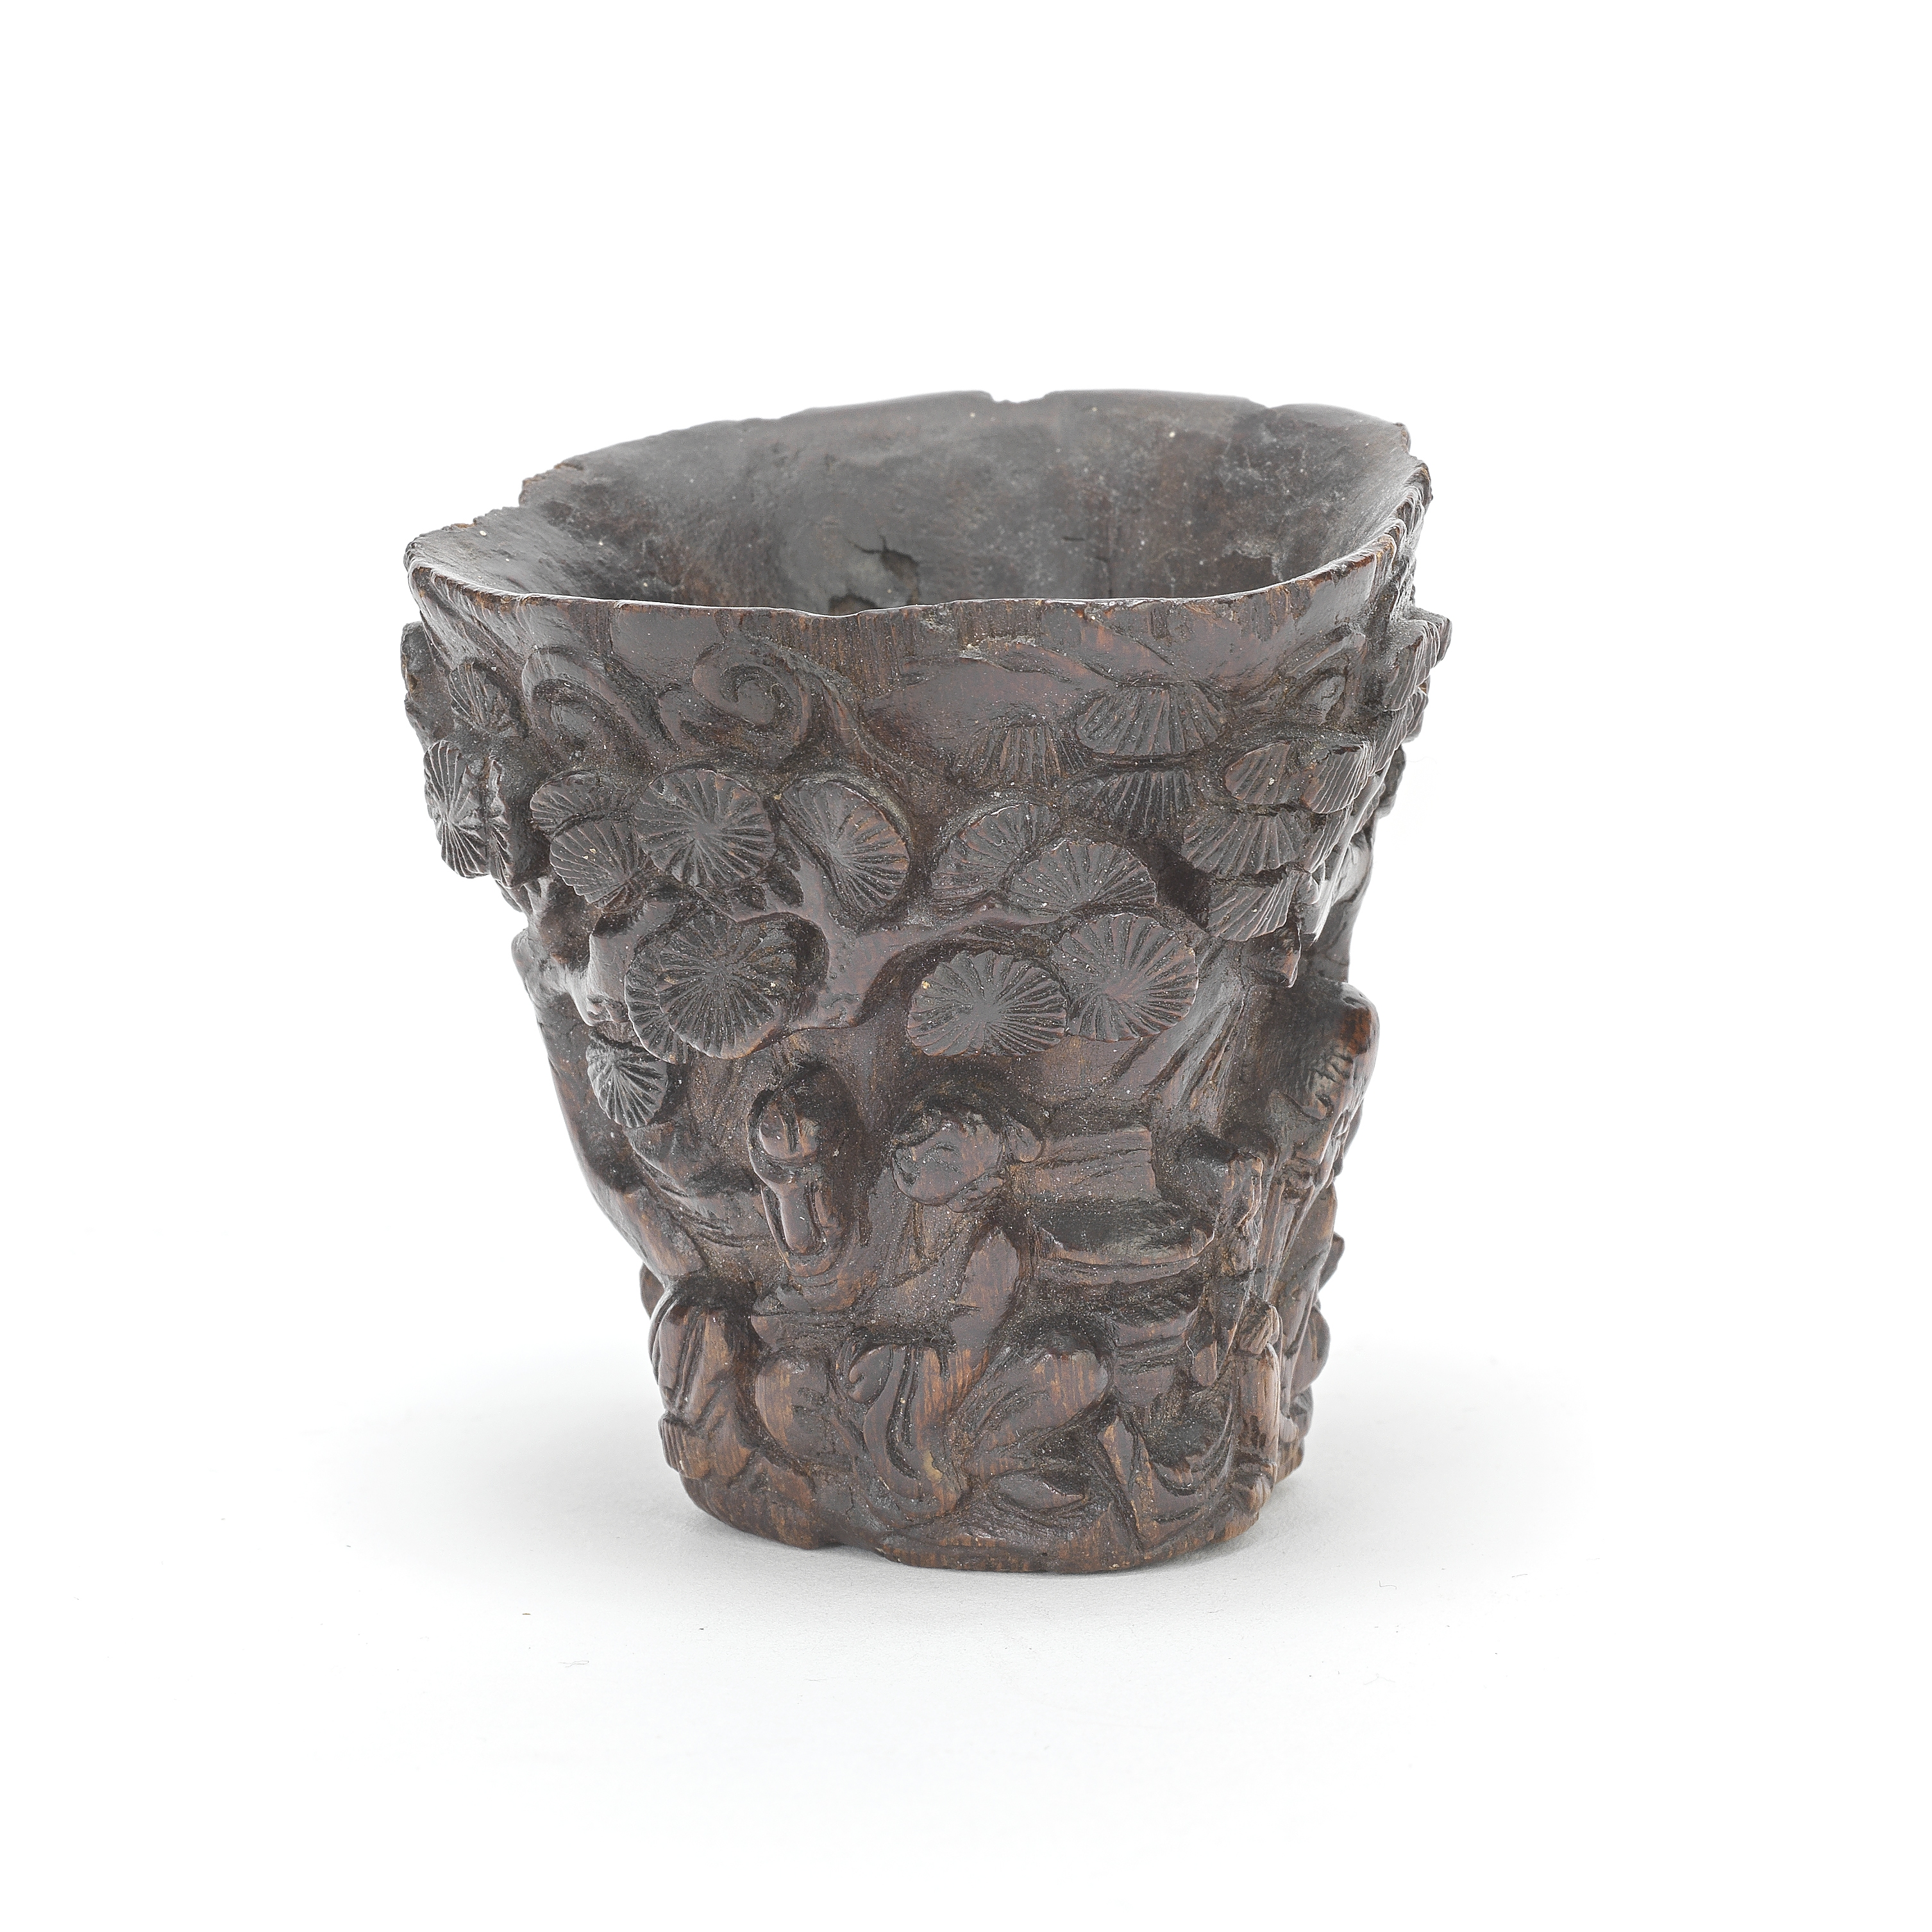 A CARVED CHEN XIANG MU LIBATION CUP Qing Dynasty